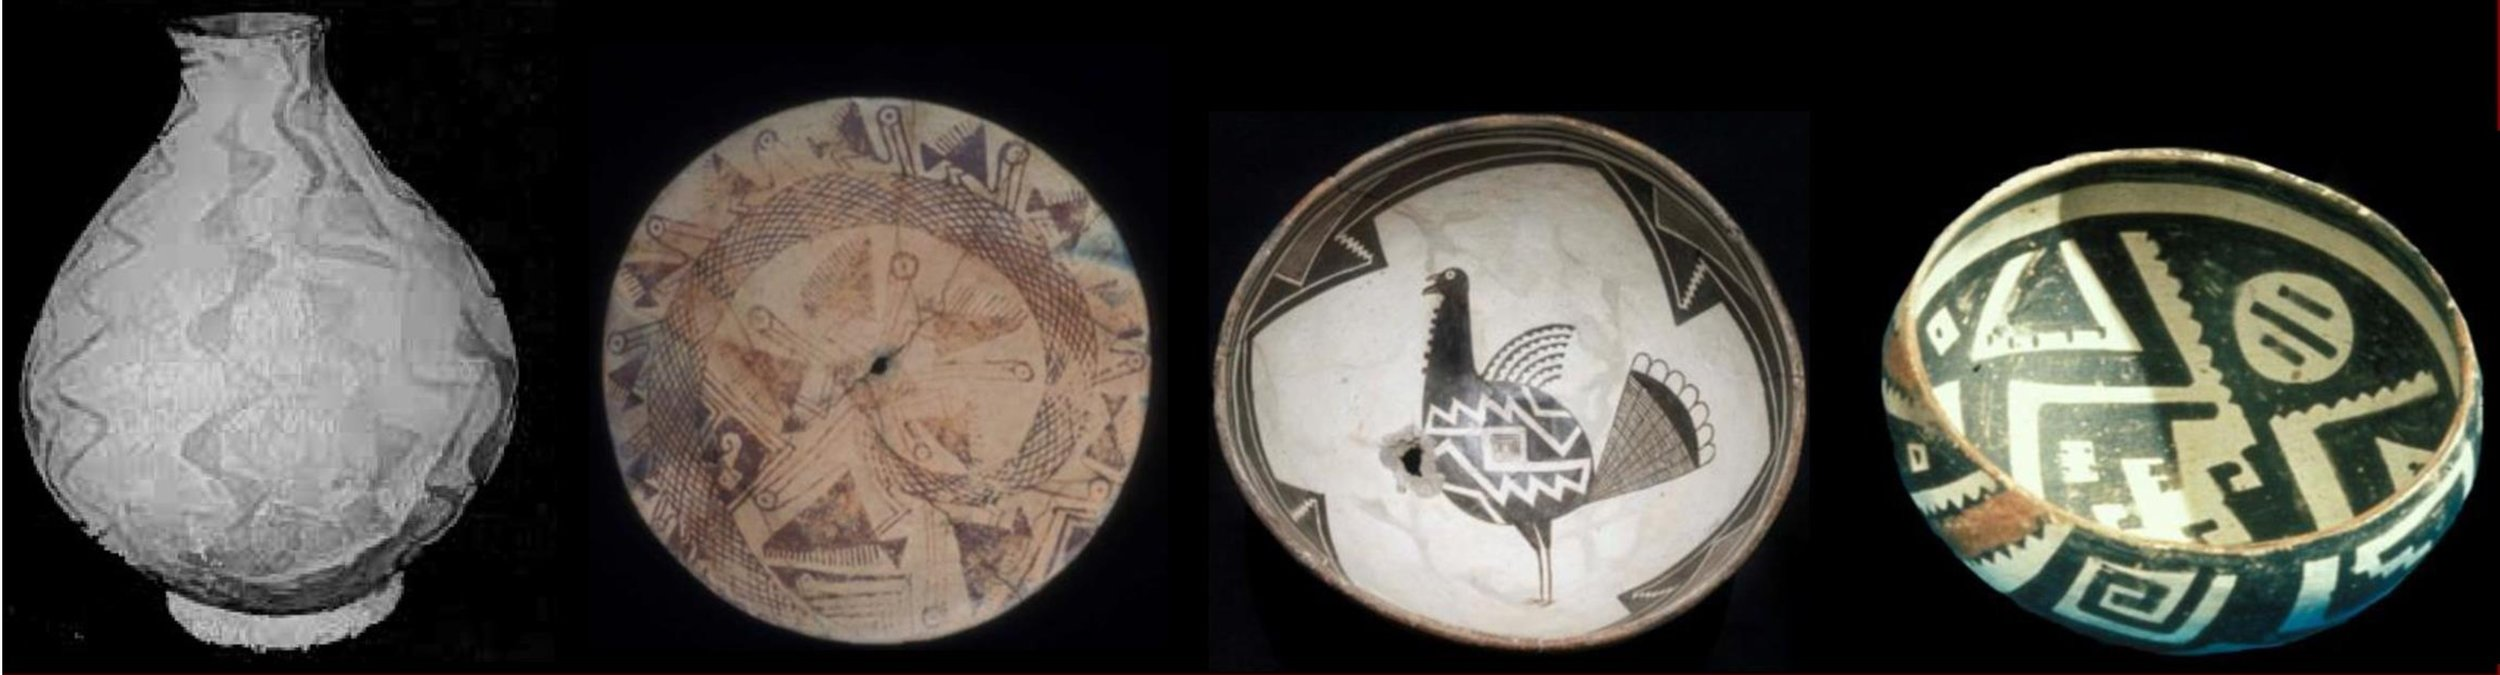 Examples of contemporaneous pottery associated with Patayan, Hohokam, Mogollon, and Ancestral Pueblo Native Americans. Distinct material culture does not rule out relatedness among populations. Pottery courtesy of the BLM, Arizona State Museum, and Amerind Foundation Museum; photo from www.oldpueblo.org.